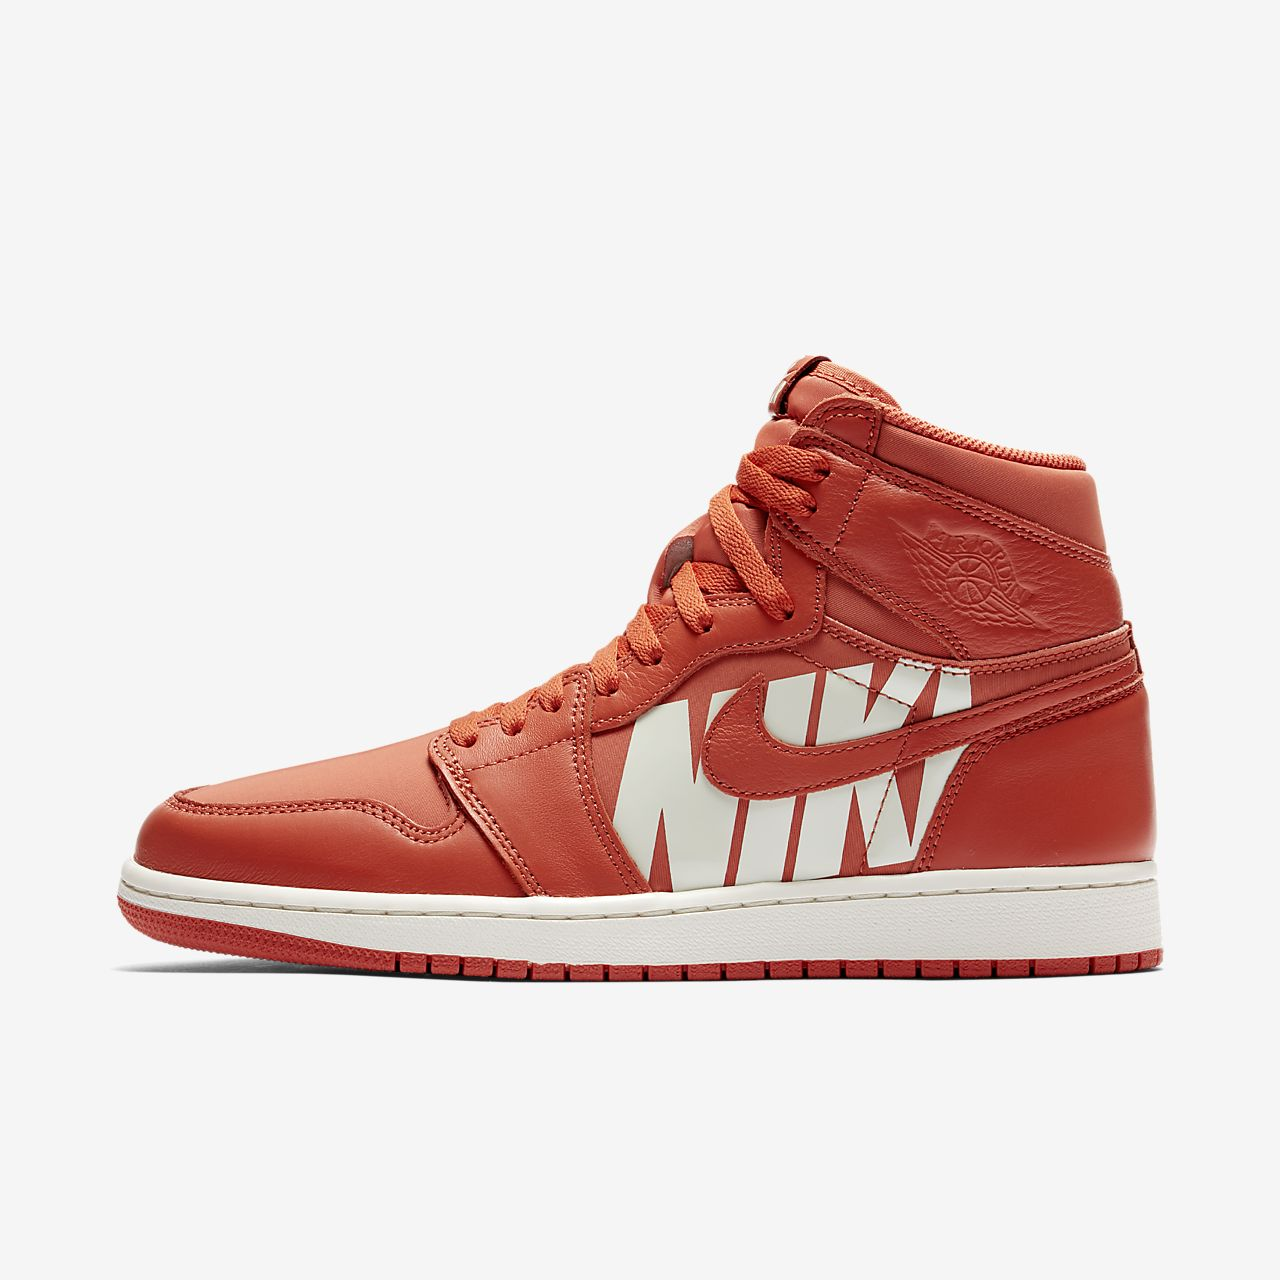 1704542f8090 Air Jordan 1 Retro High OG Shoe. Nike.com ZA